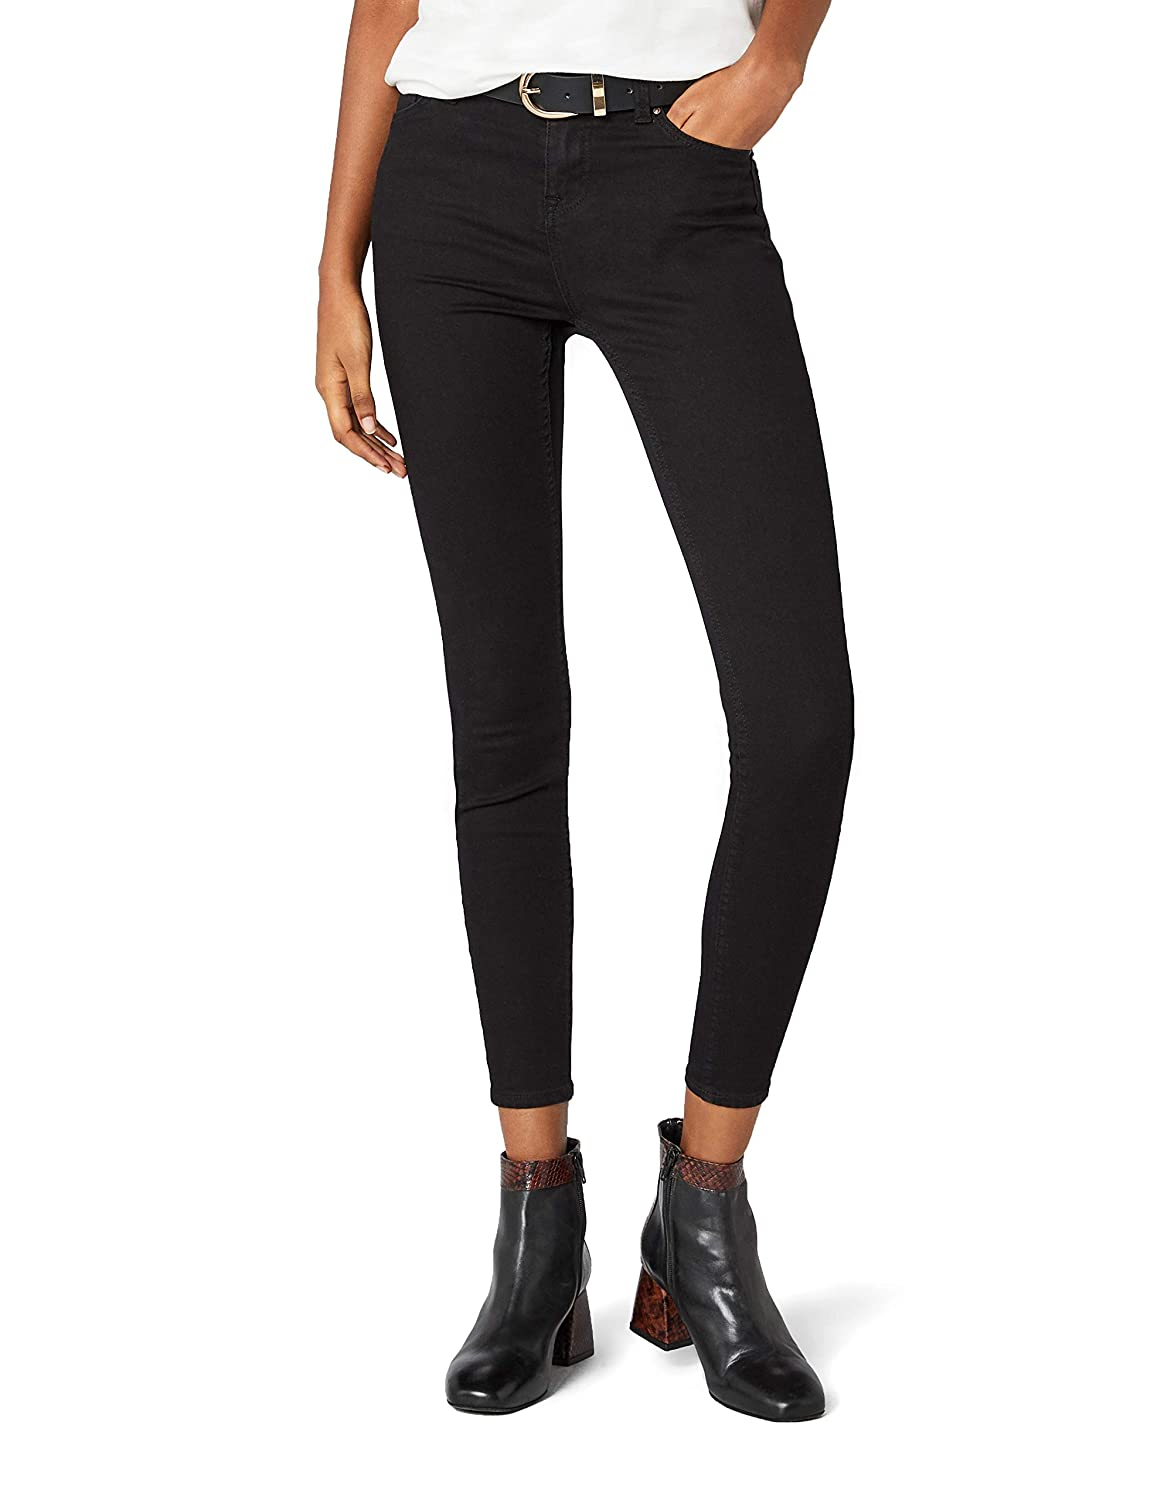 TALLA 26W / 32L. New Look Supersoft Superskinny Vaquero Skinny para Mujer